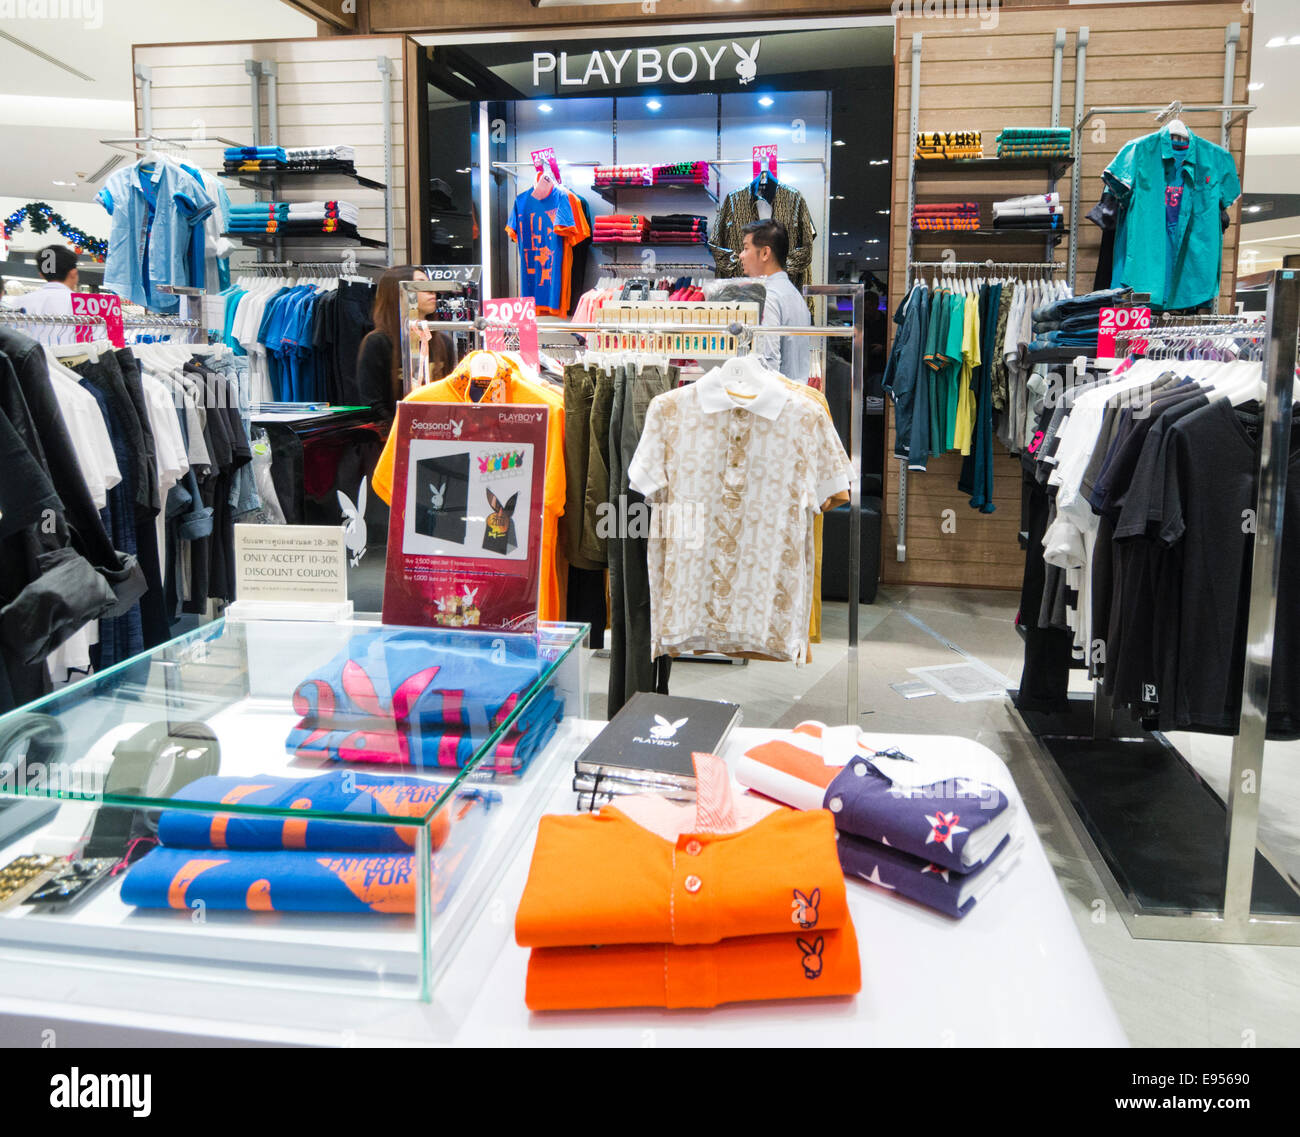 Playboy High Resolution Stock Photography and Images - Alamy